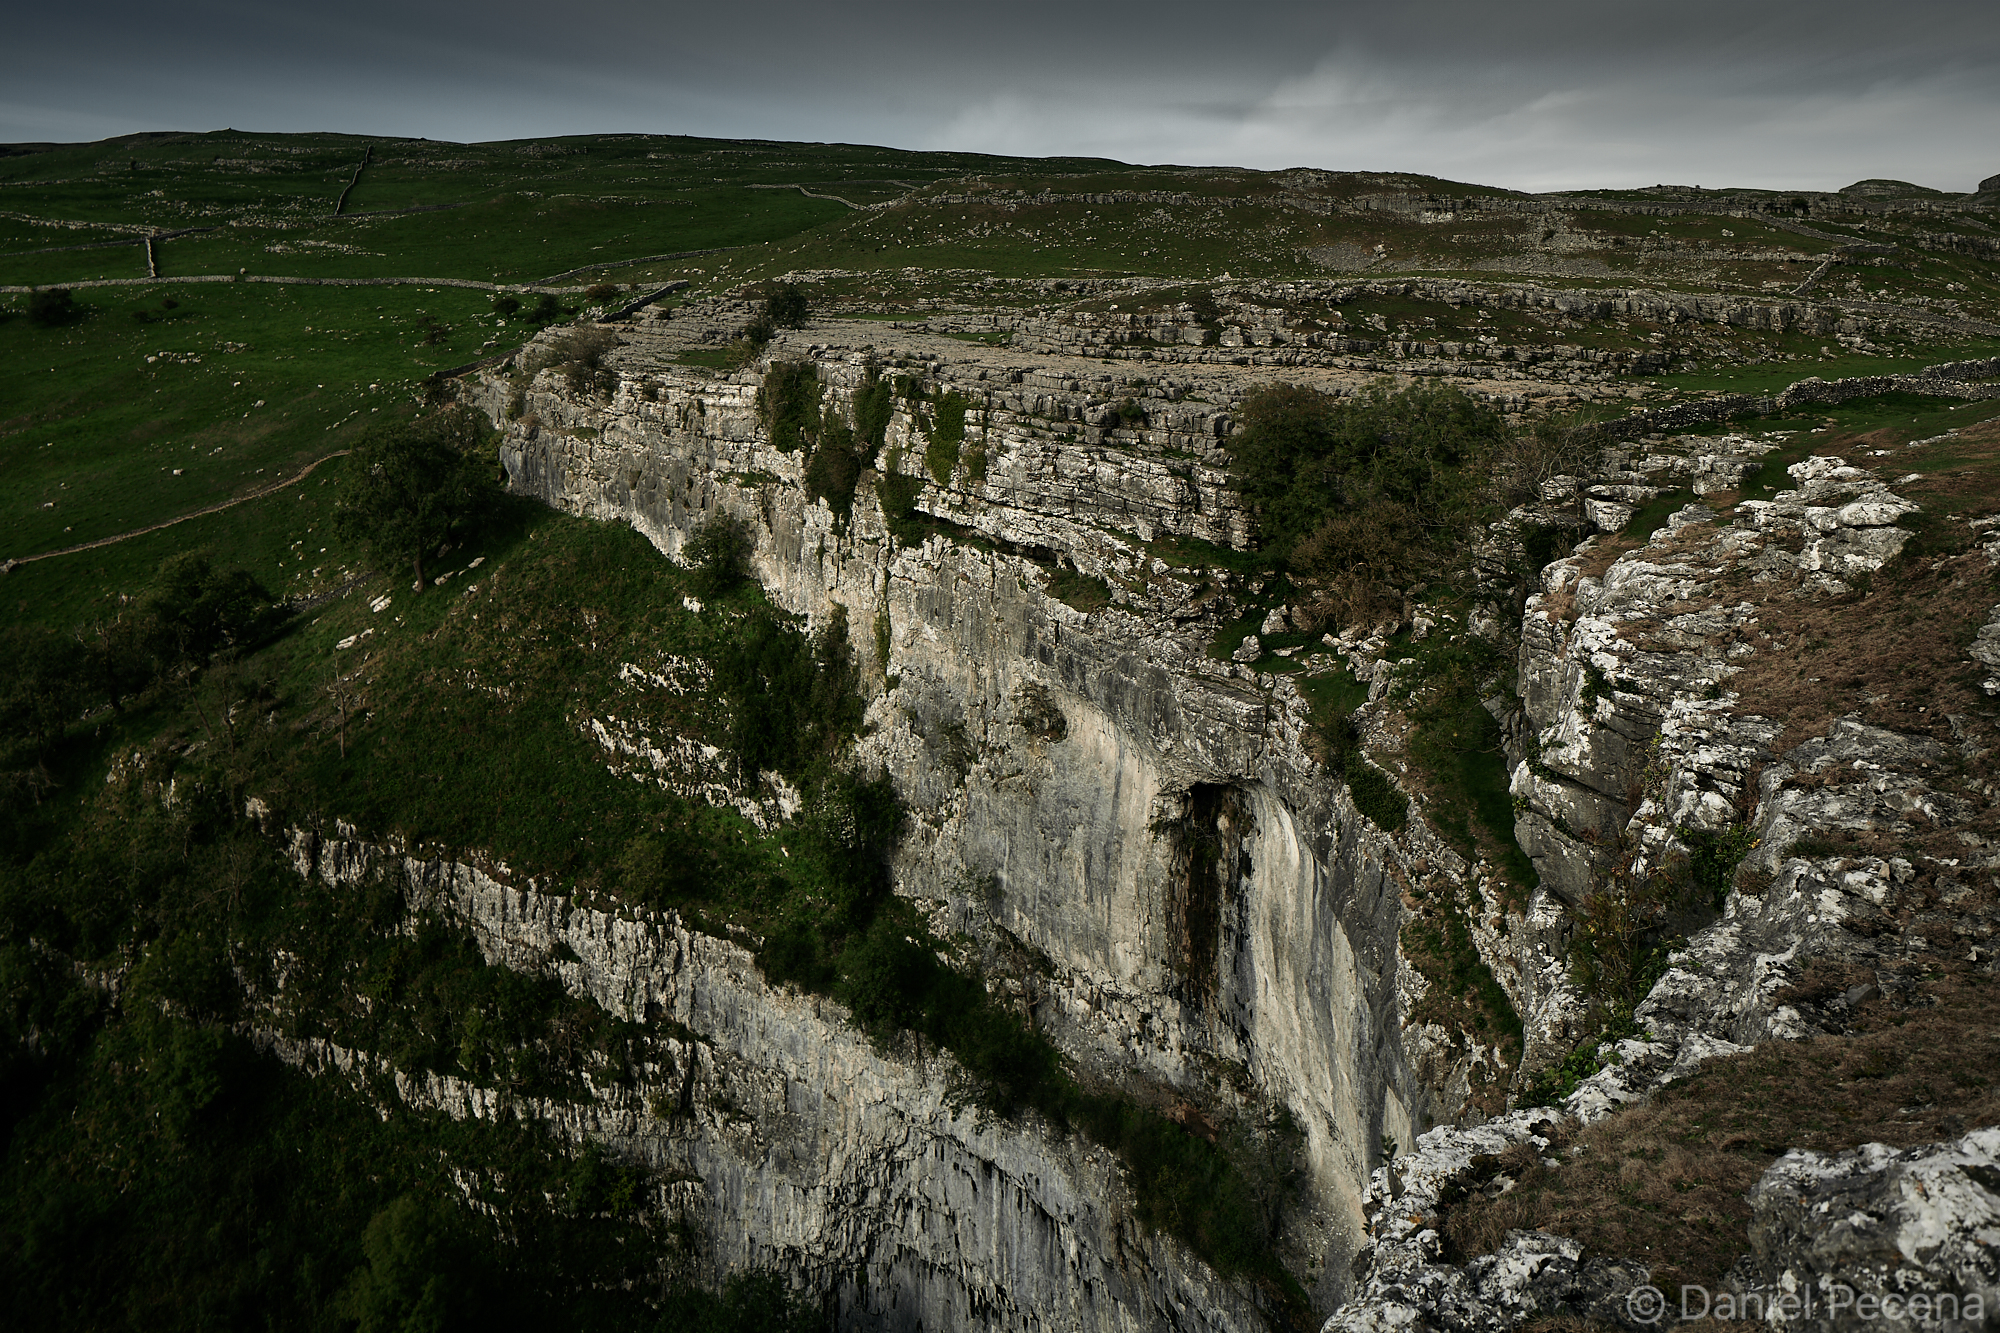 Malham cove by moonlight (Autumn 2018)